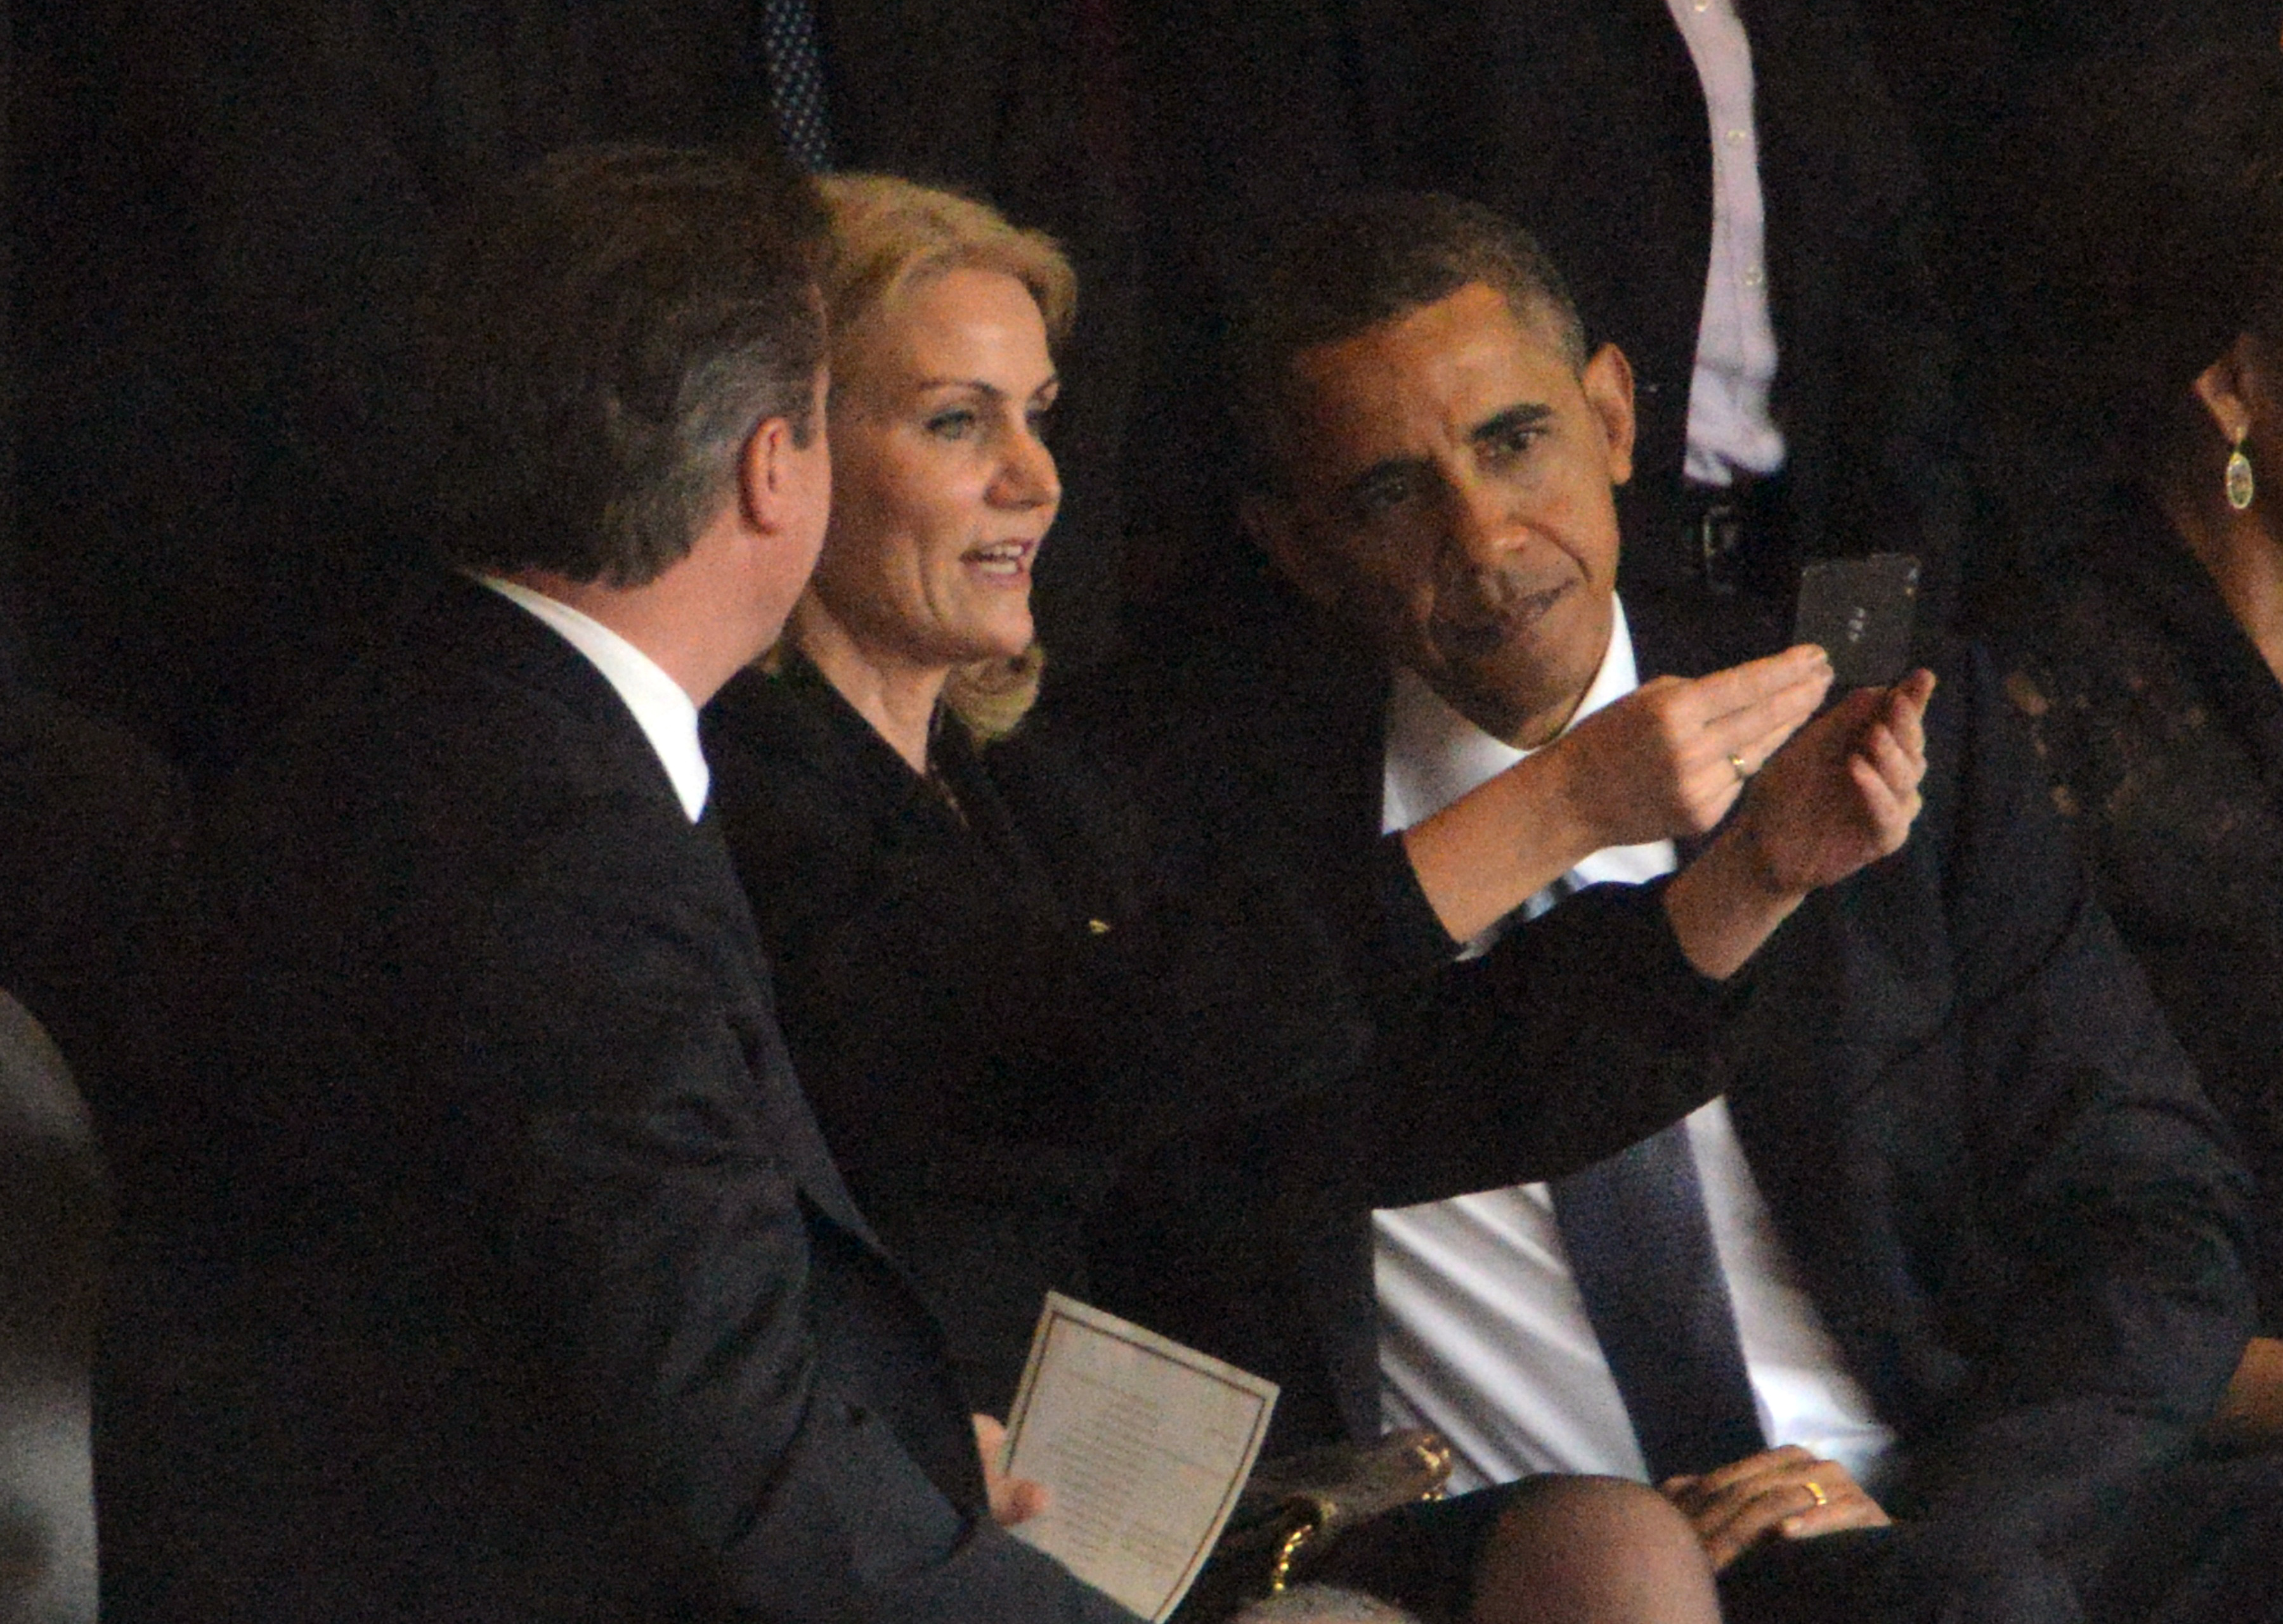 US President Barack Obama (R), British Prime Minister David Cameron look at the picture taken by Denmark's Prime Minister Helle Thorning Schmidt (C) during the memorial service of South African former president Nelson Mandela at the FNB Stadium (Soccer City) in Johannesburg on December 10, 2013. Mandela, the revered icon of the anti-apartheid struggle in South Africa and one of the towering political figures of the 20th century, died in Johannesburg on December 5 at age 95. AFP PHOTO / ROBERTO SCHMIDT        (Photo credit should read ROBERTO SCHMIDT/AFP/Getty Images)